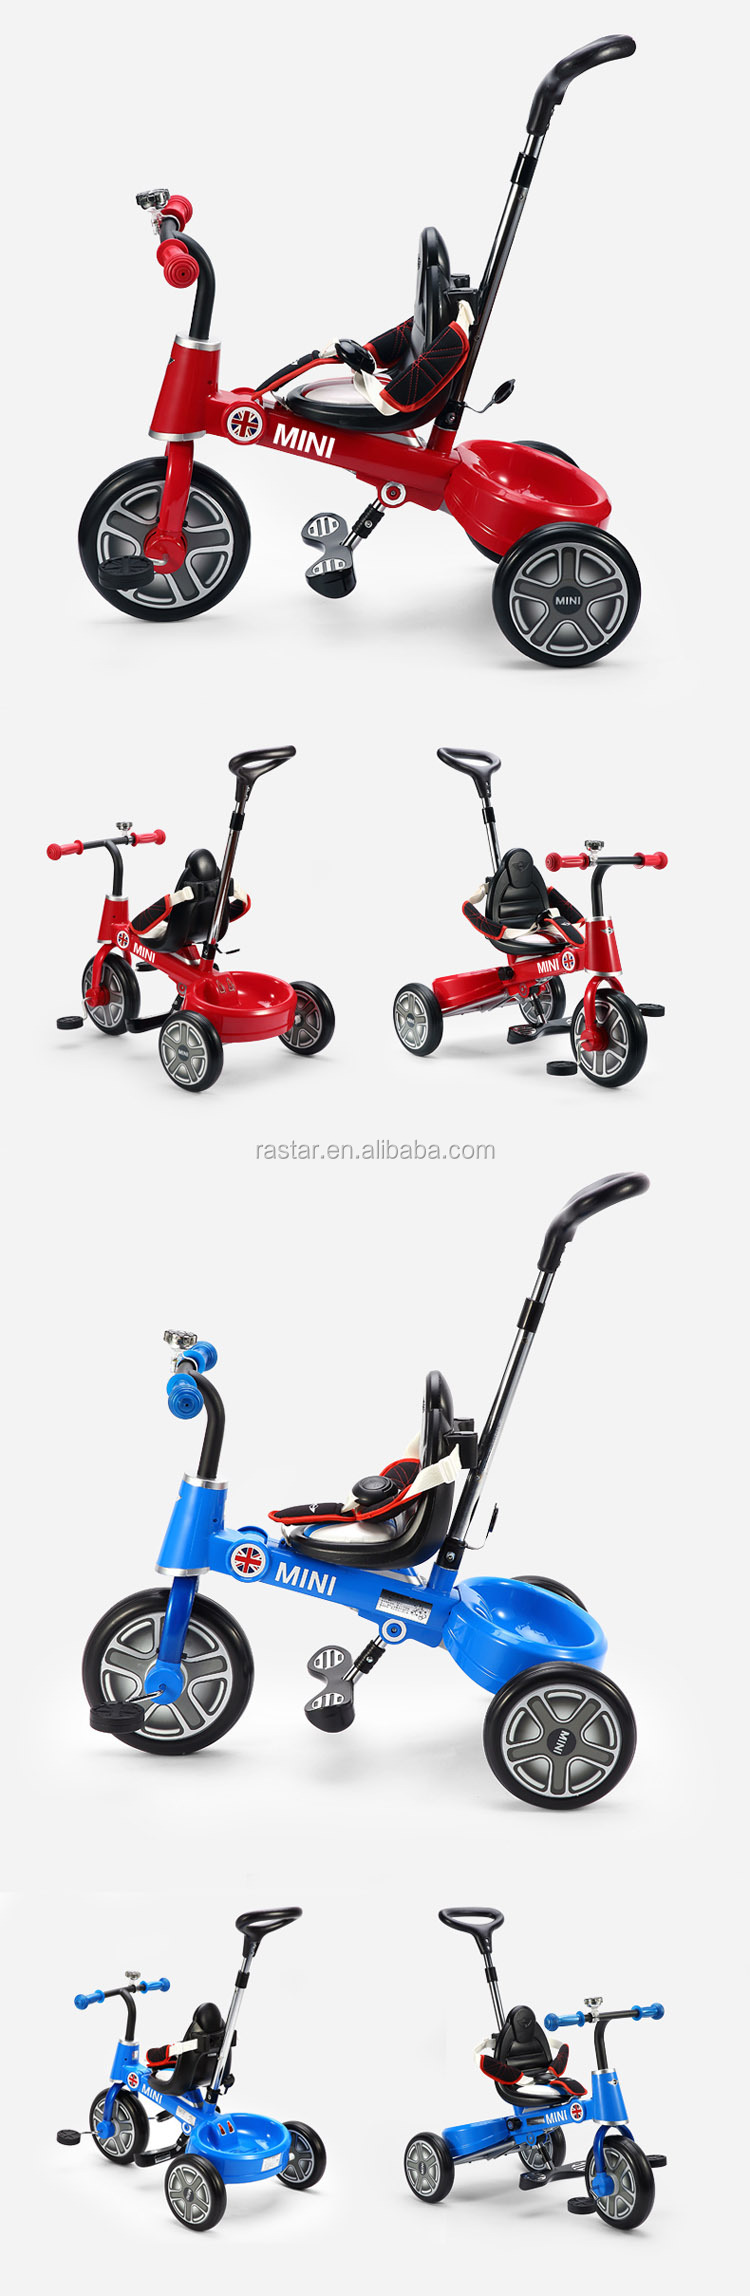 RASTAR new products kids training walker tricycle bike children bicycle